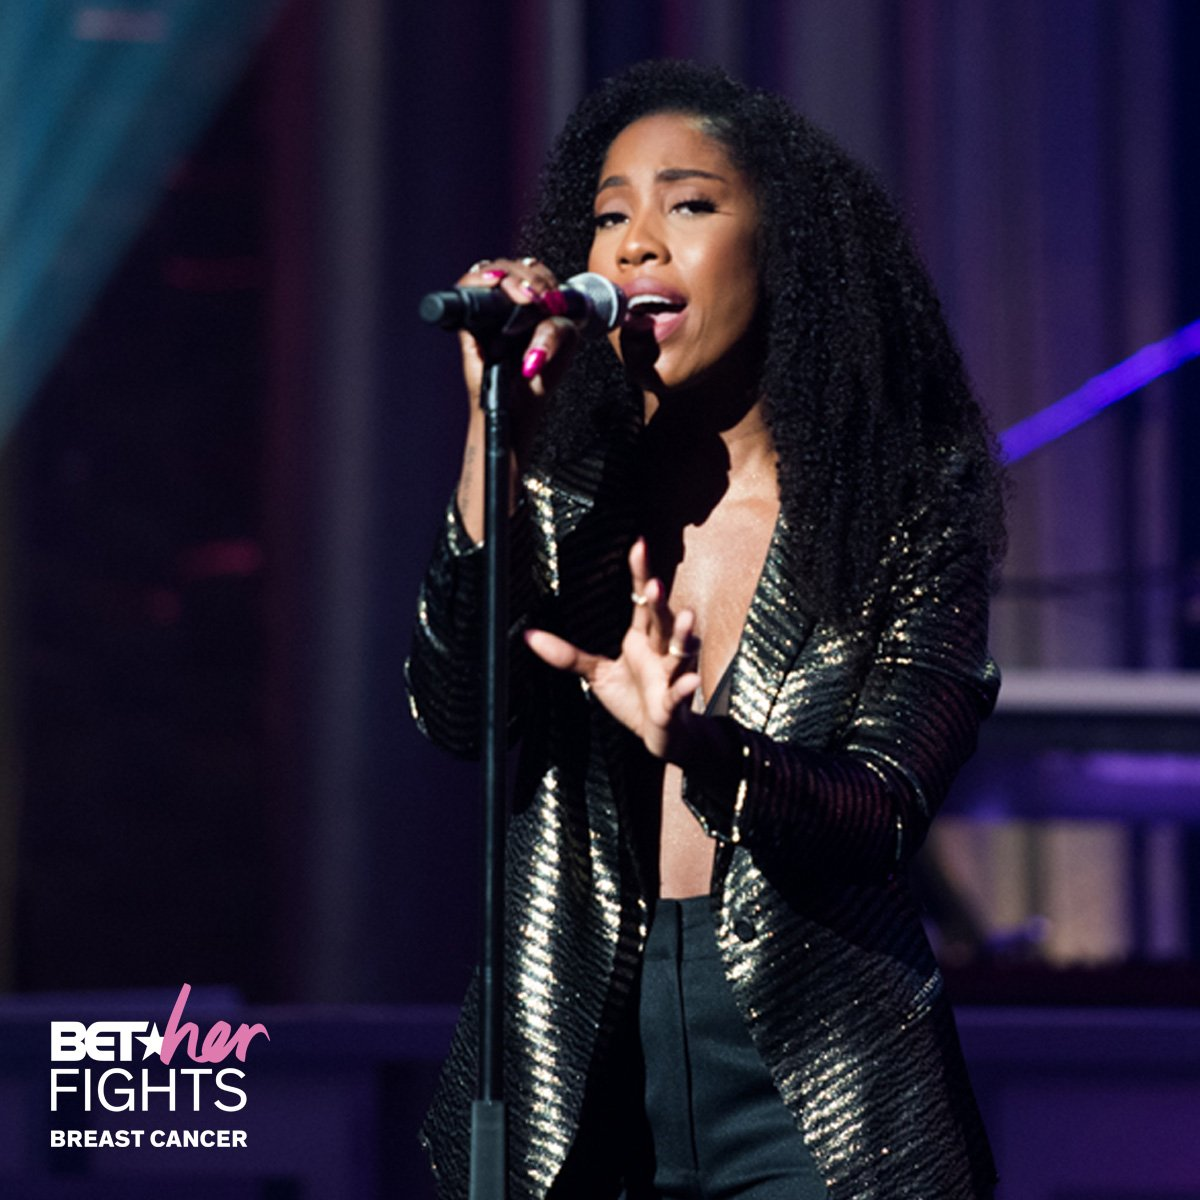 🎶Oh, before I do... I need to know before I go there with you...🎶  @sevyn thank you for blessing us all with these vocal runs on #BETherFights: Breast Cancer. 🙌🏾